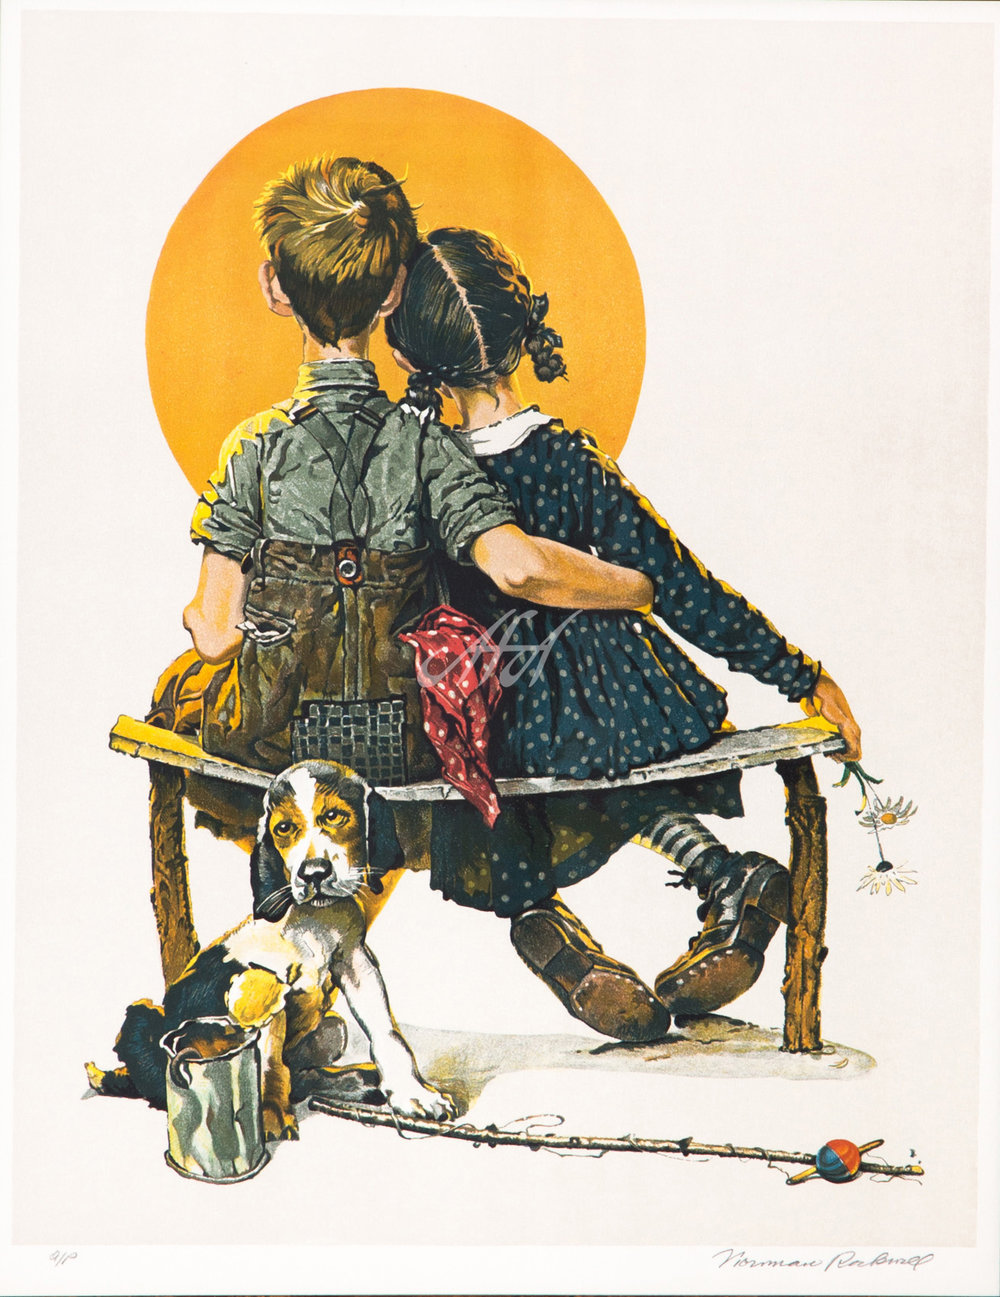 Norman_Rockwell_young spooners LoRes watermark.jpg